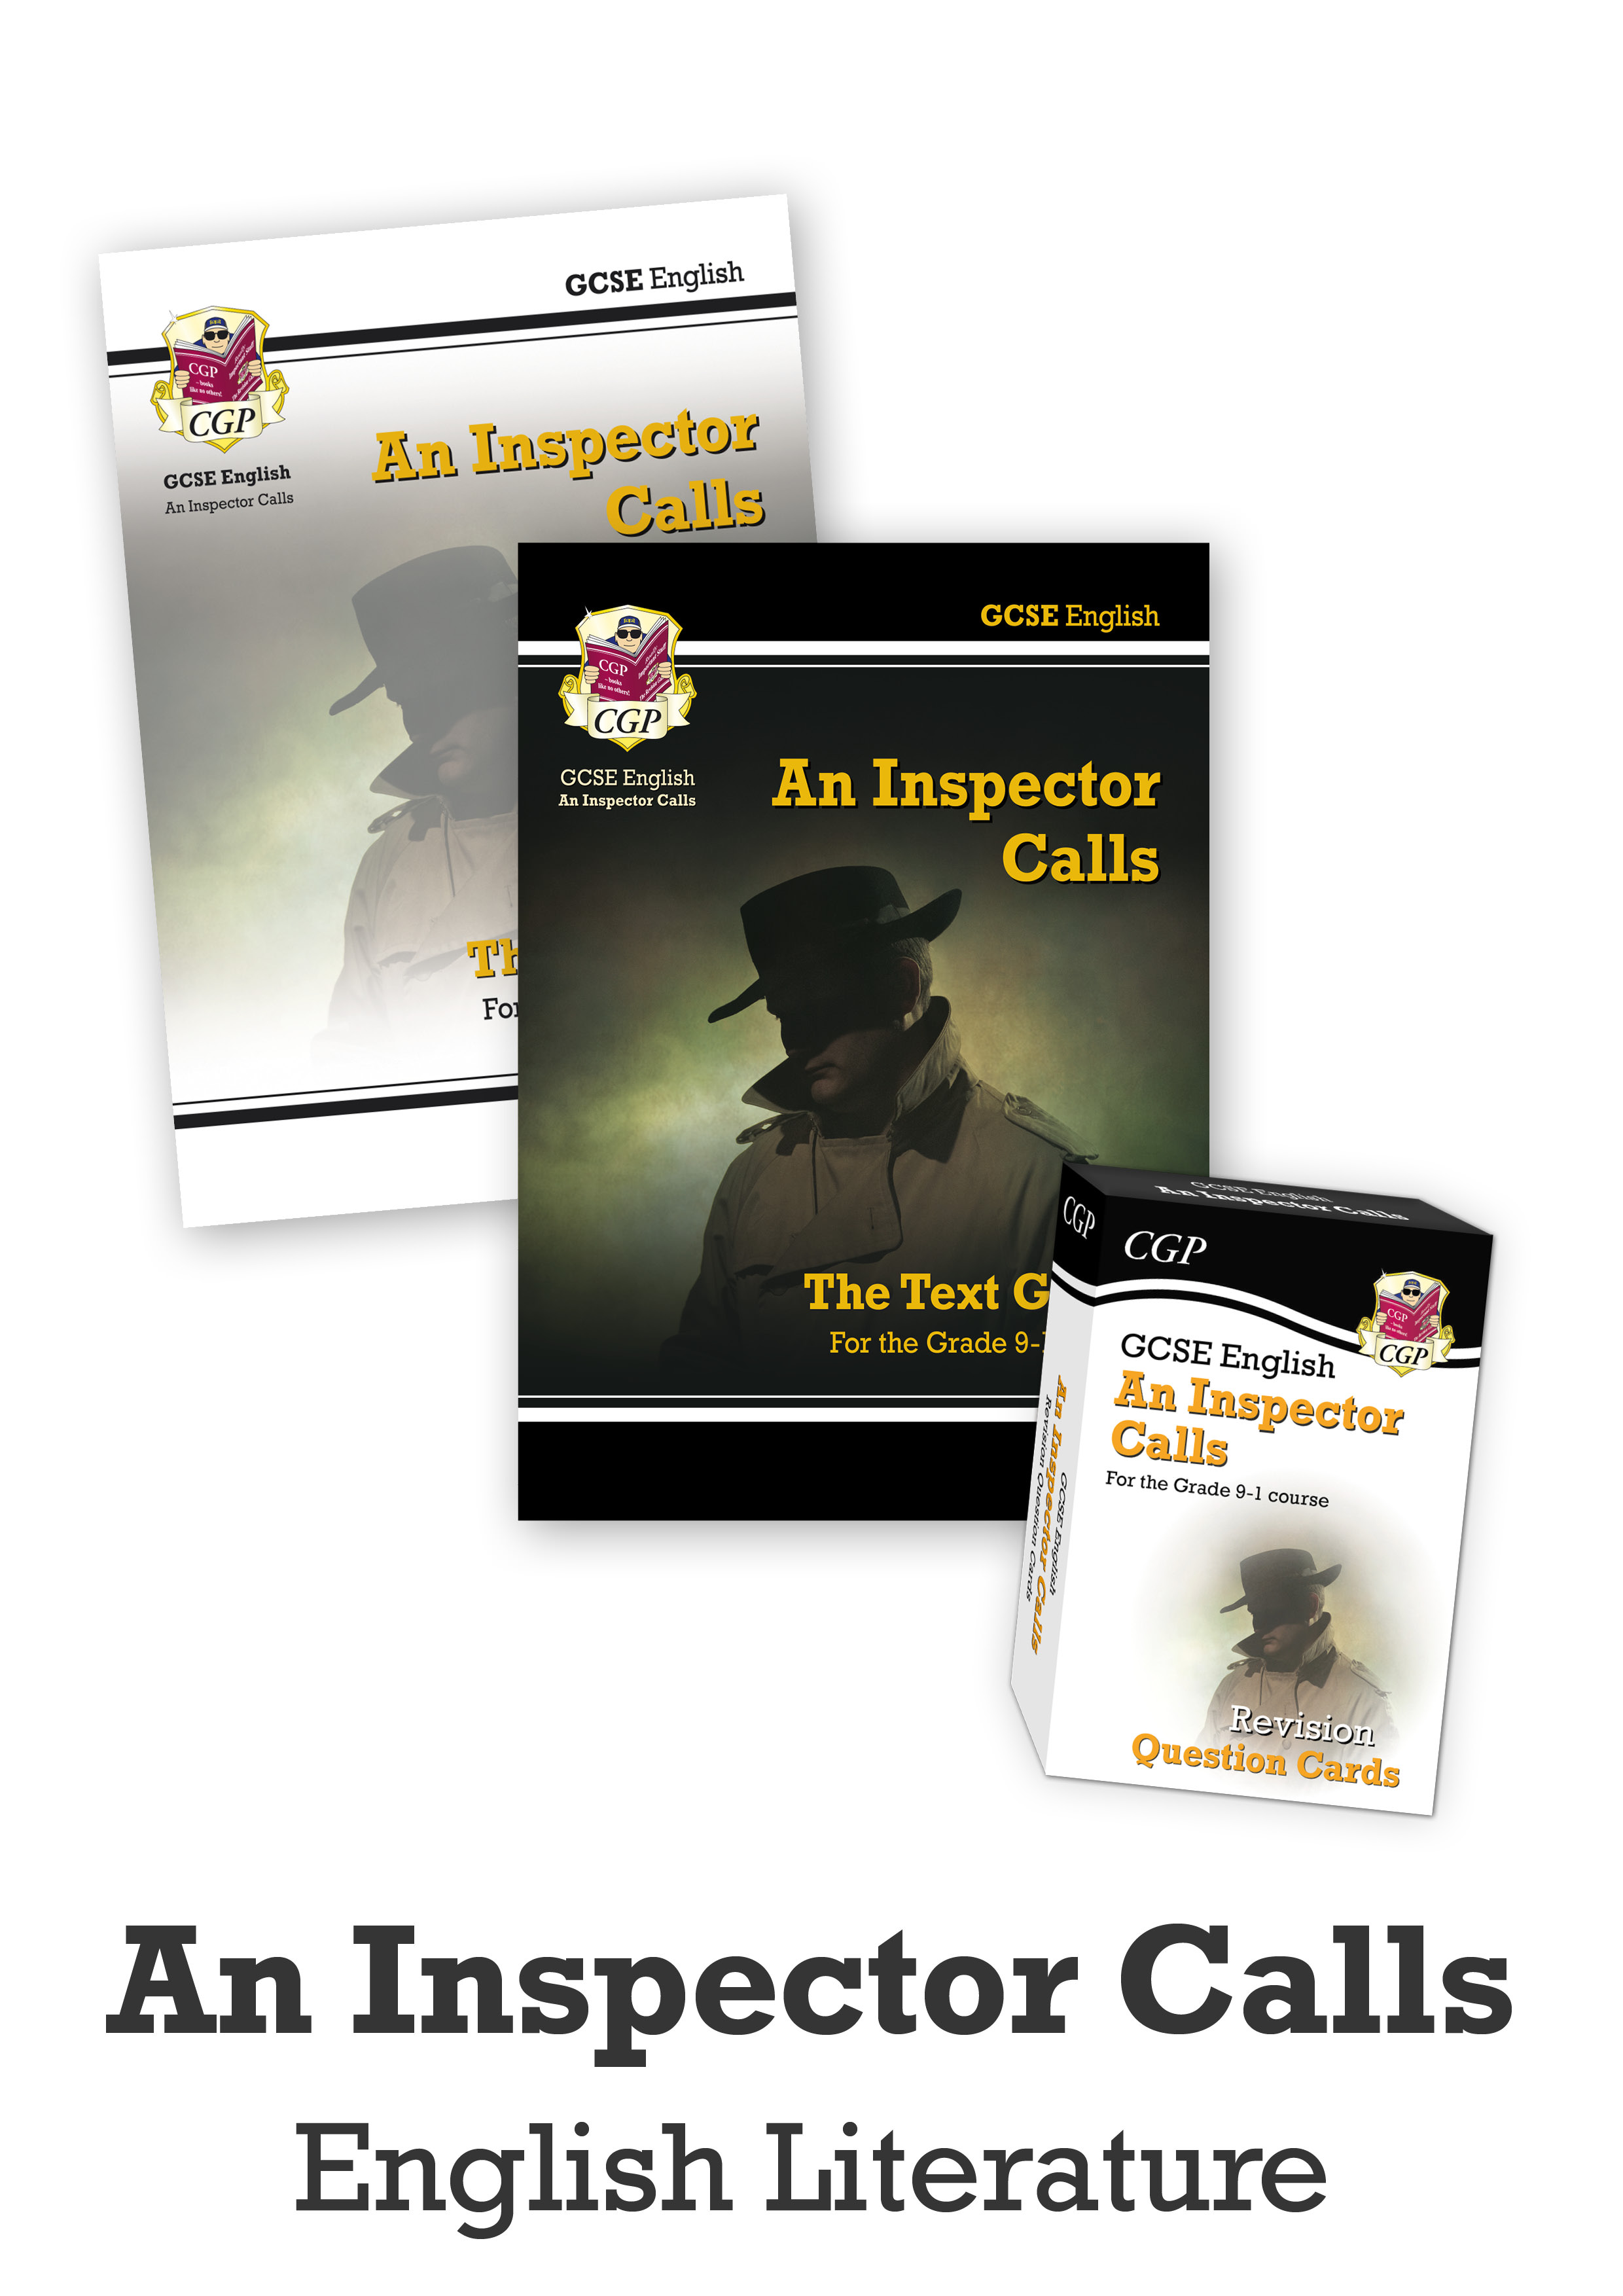 ETICUB41 - GCSE Essentials Bundle: English Literature - An Inspector Calls